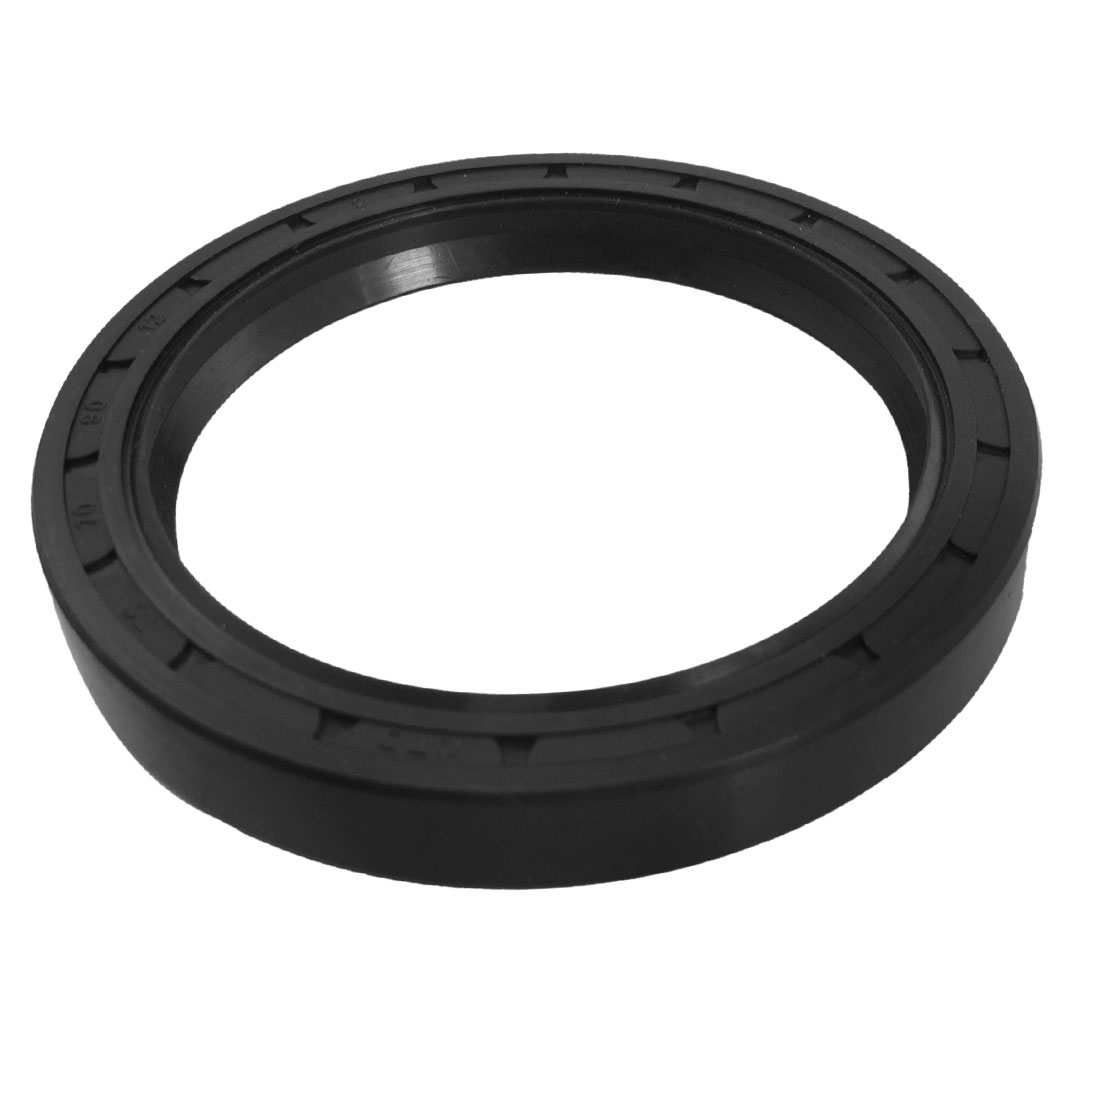 Black Nitrile Rubber Dual Lips Oil Shaft Seal TC 70mm x 90mm x 12mm